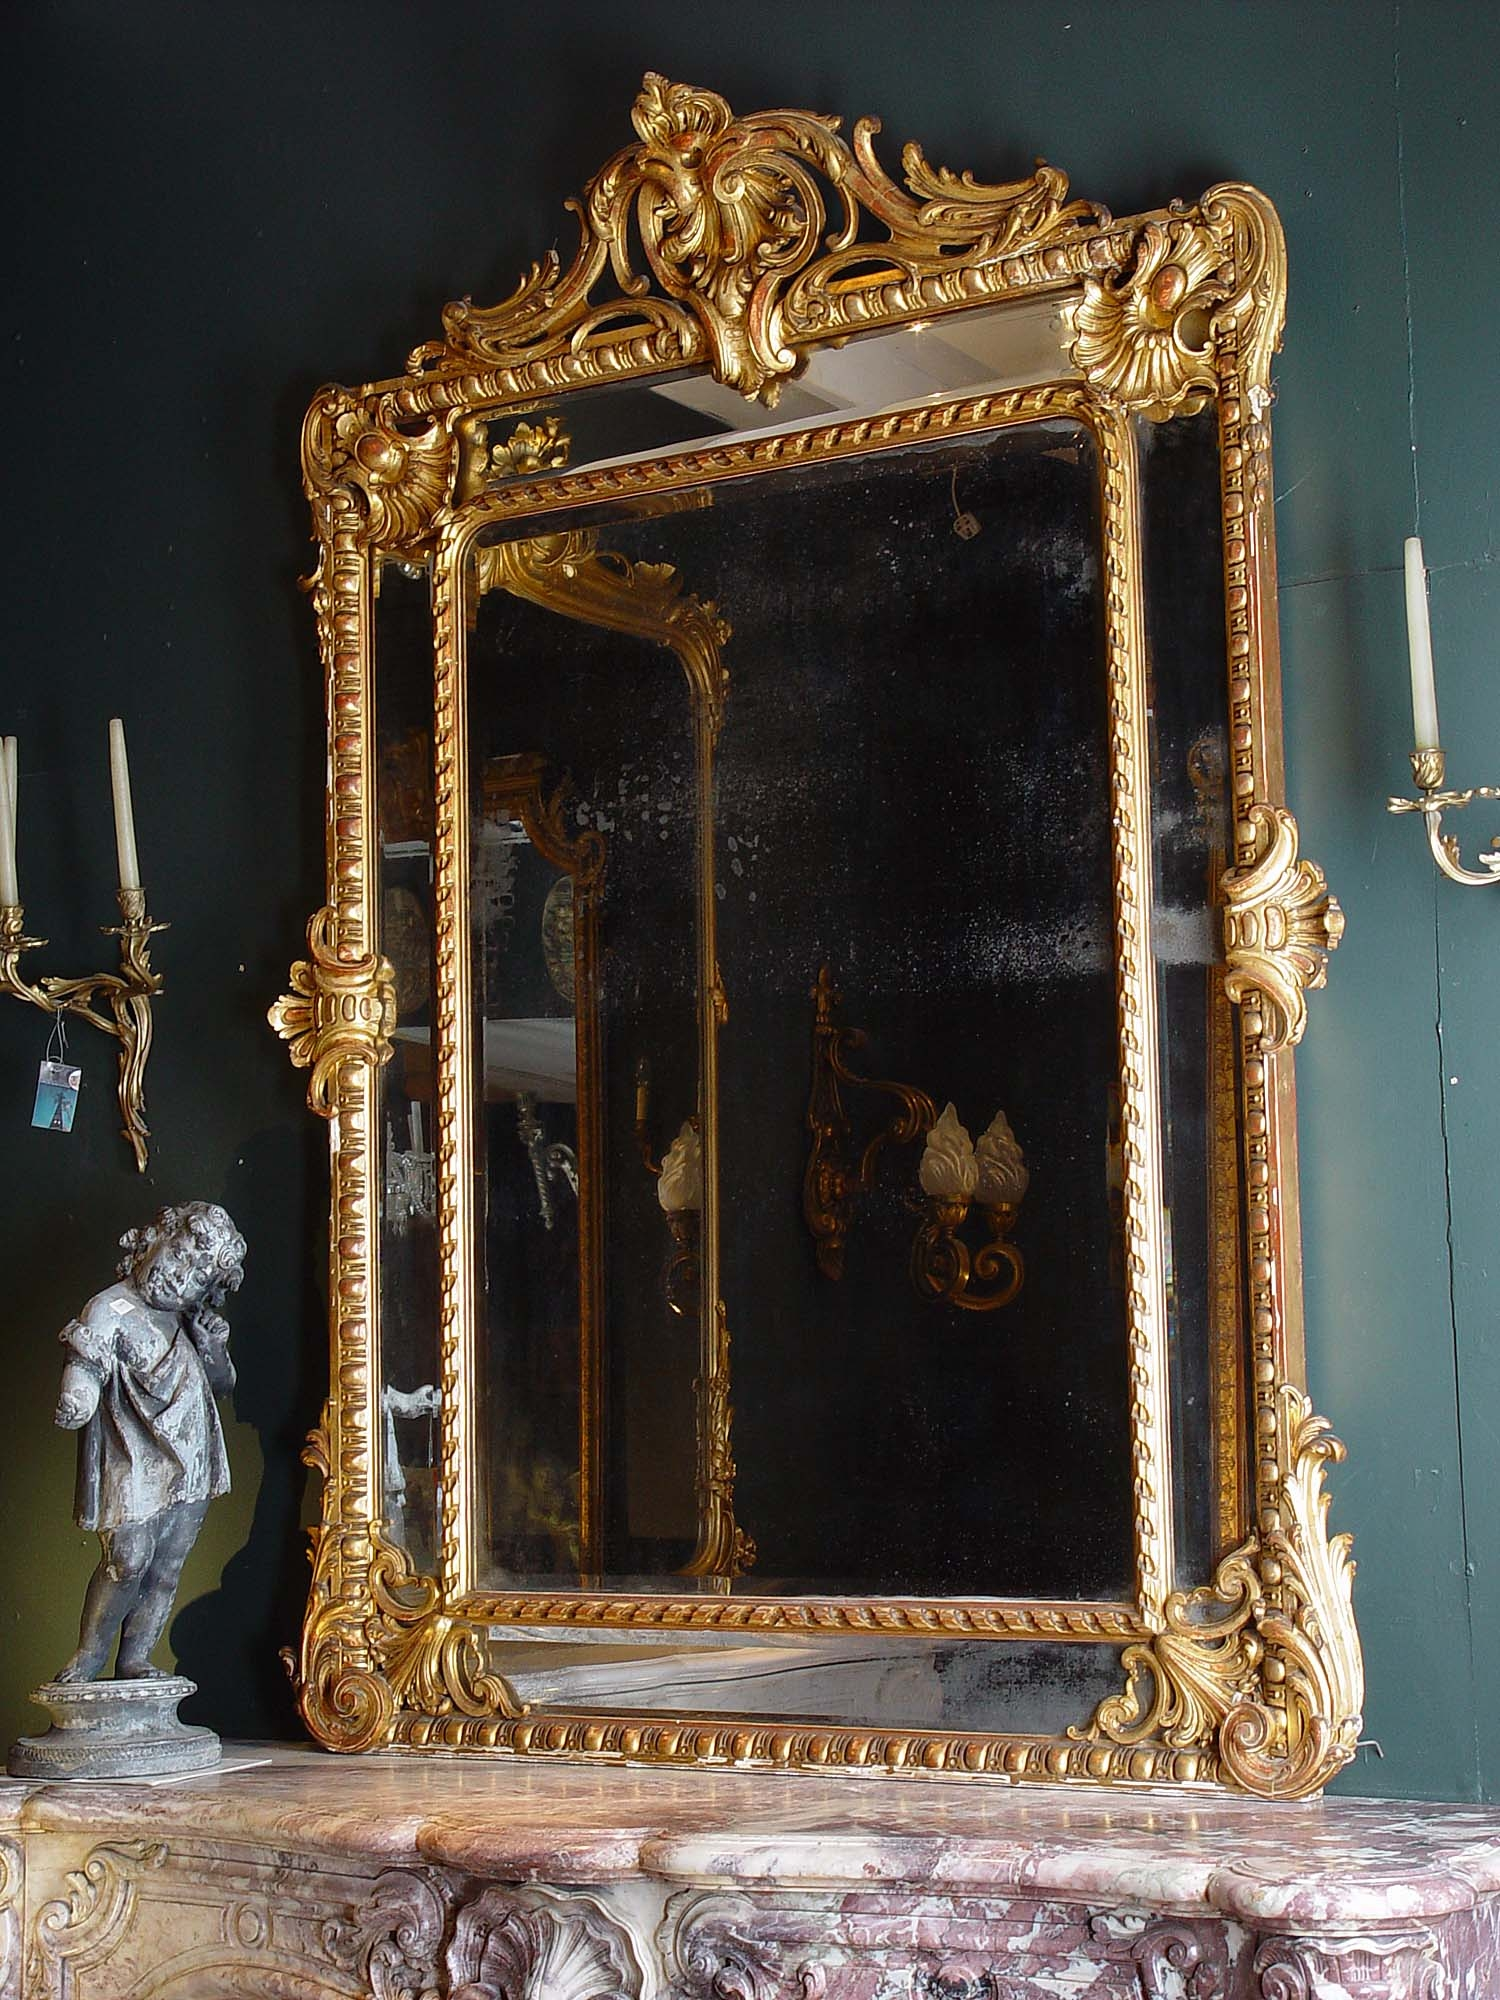 Big Mirrors For Sale 12 Enchanting Ideas With Large Leaning Pertaining To Large Vintage Mirrors For Sale (Image 4 of 15)